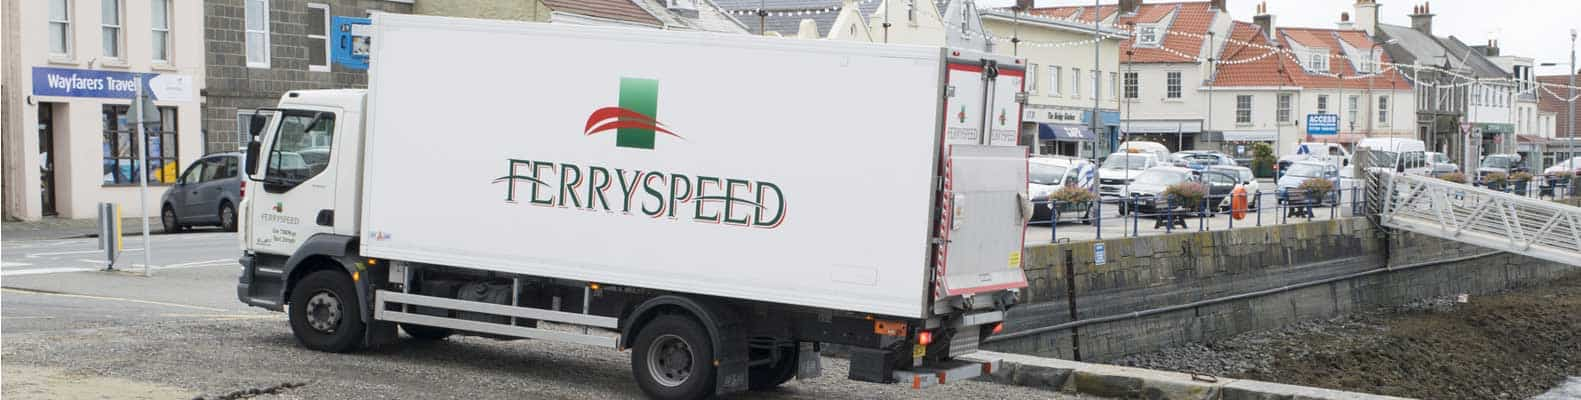 Guernsey freight services